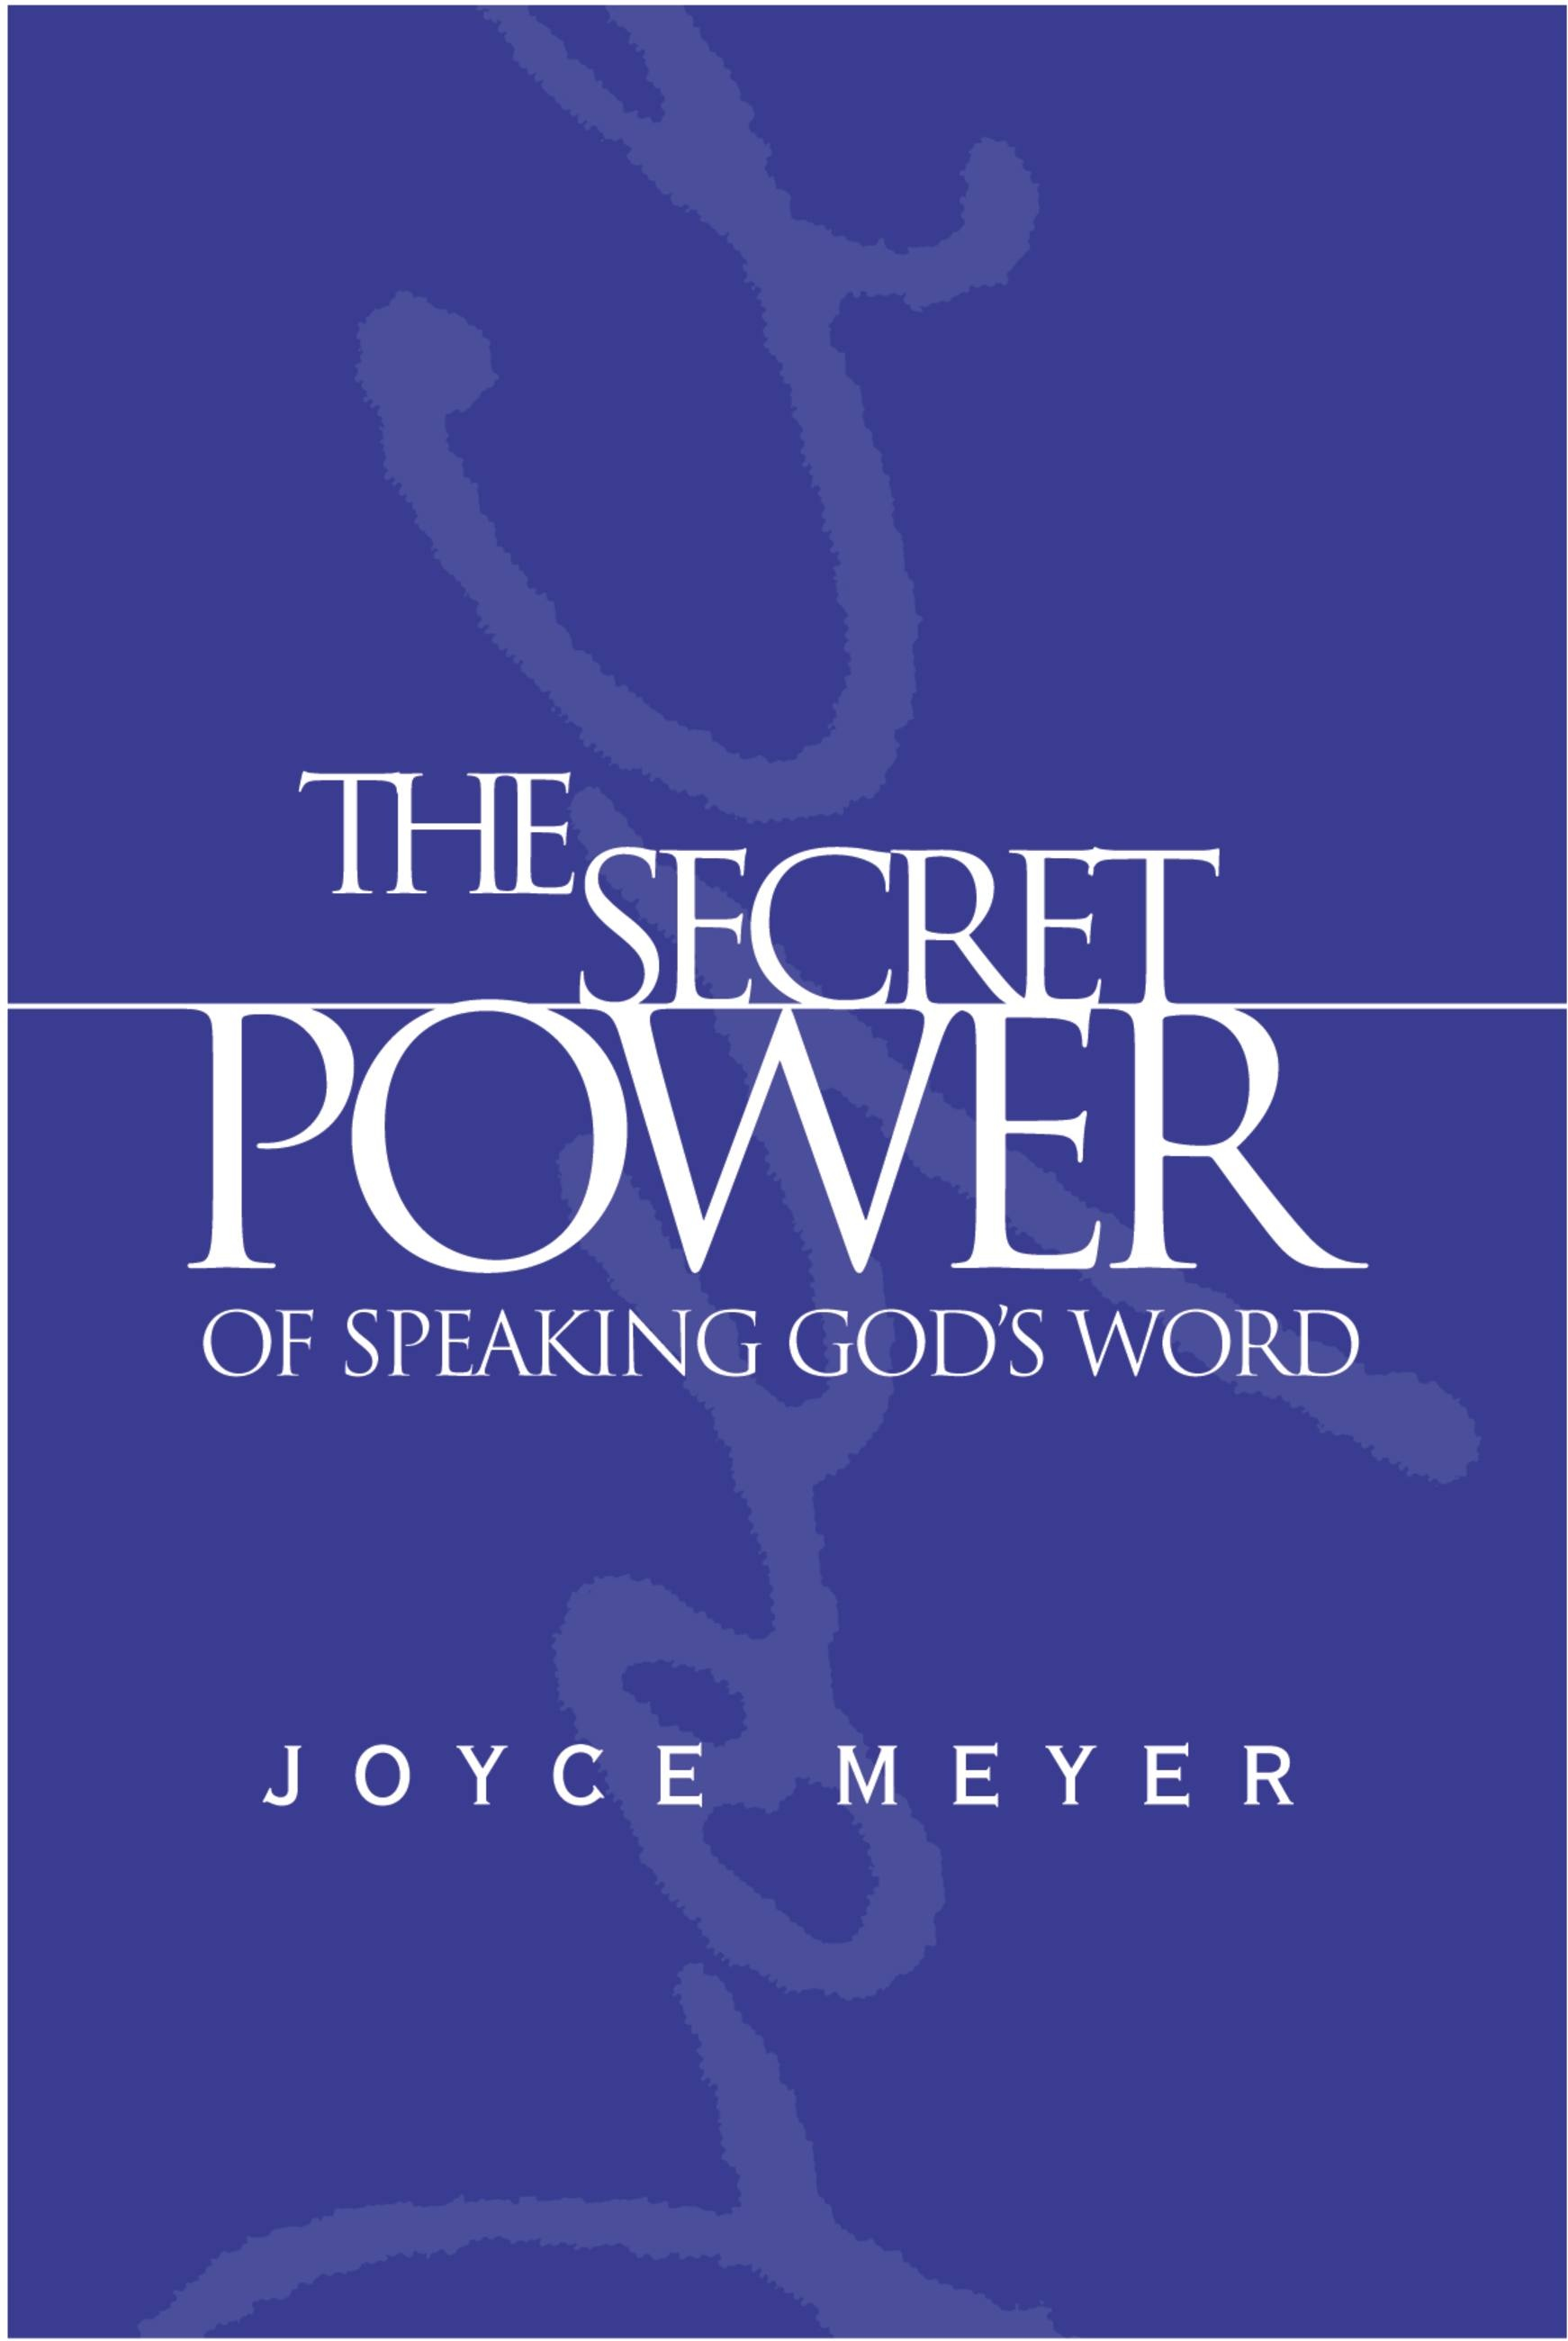 The Secret Power of Speaking God's Word